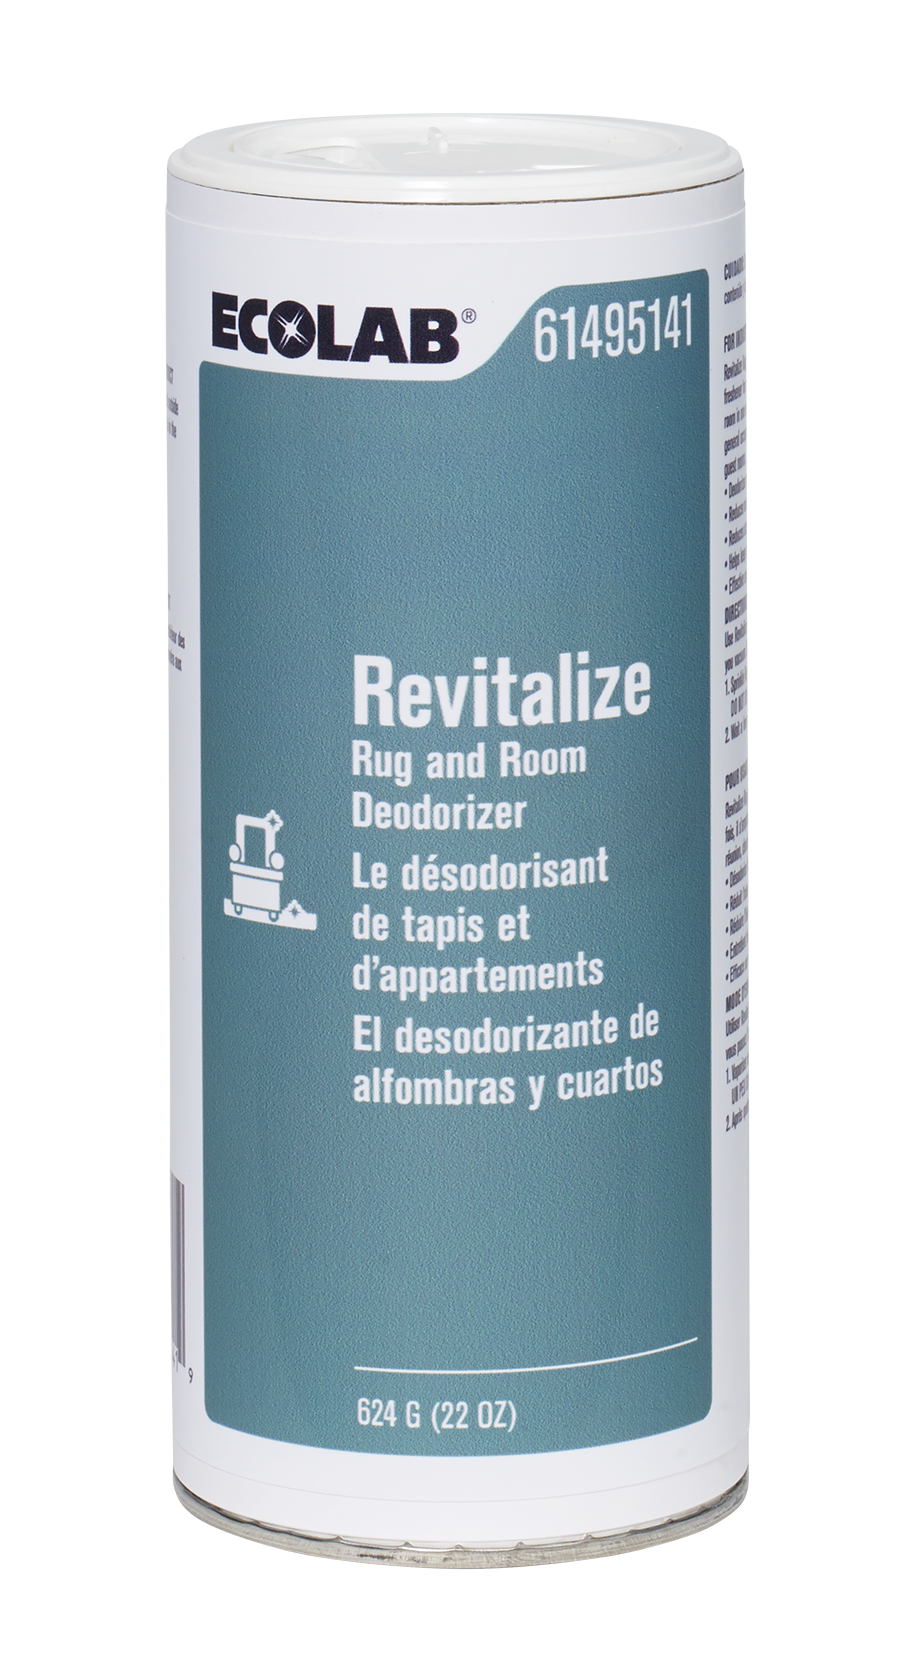 Revitalize Rug And Room Deodorizer